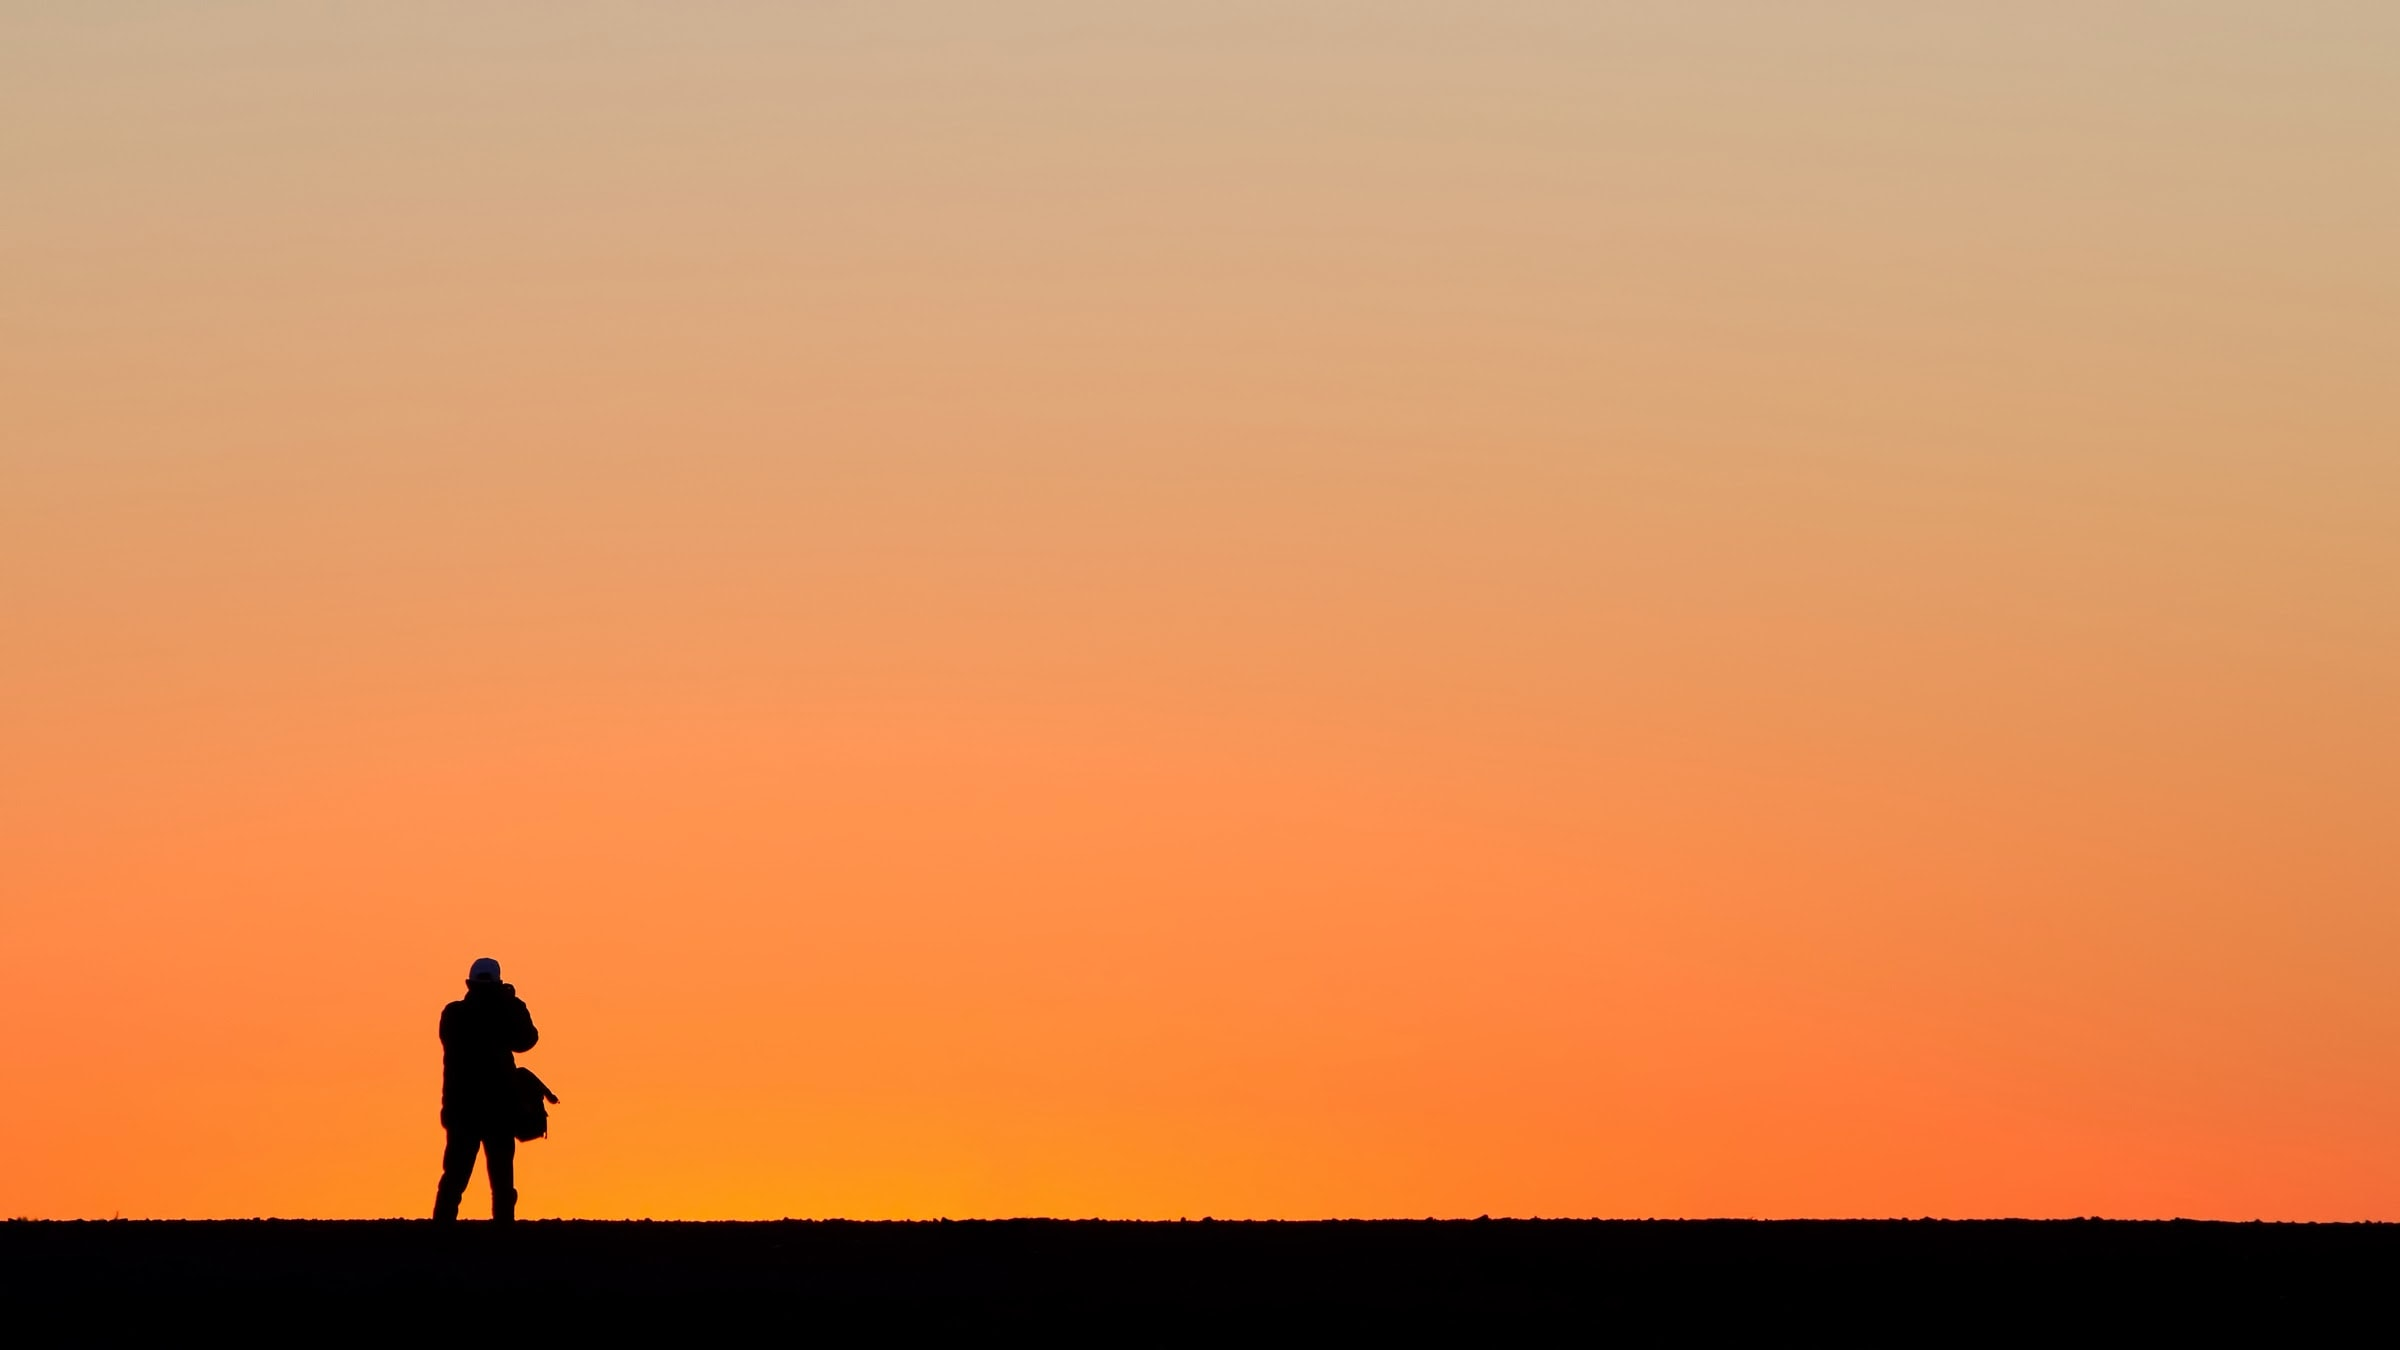 silhouette of standing person under orange sky